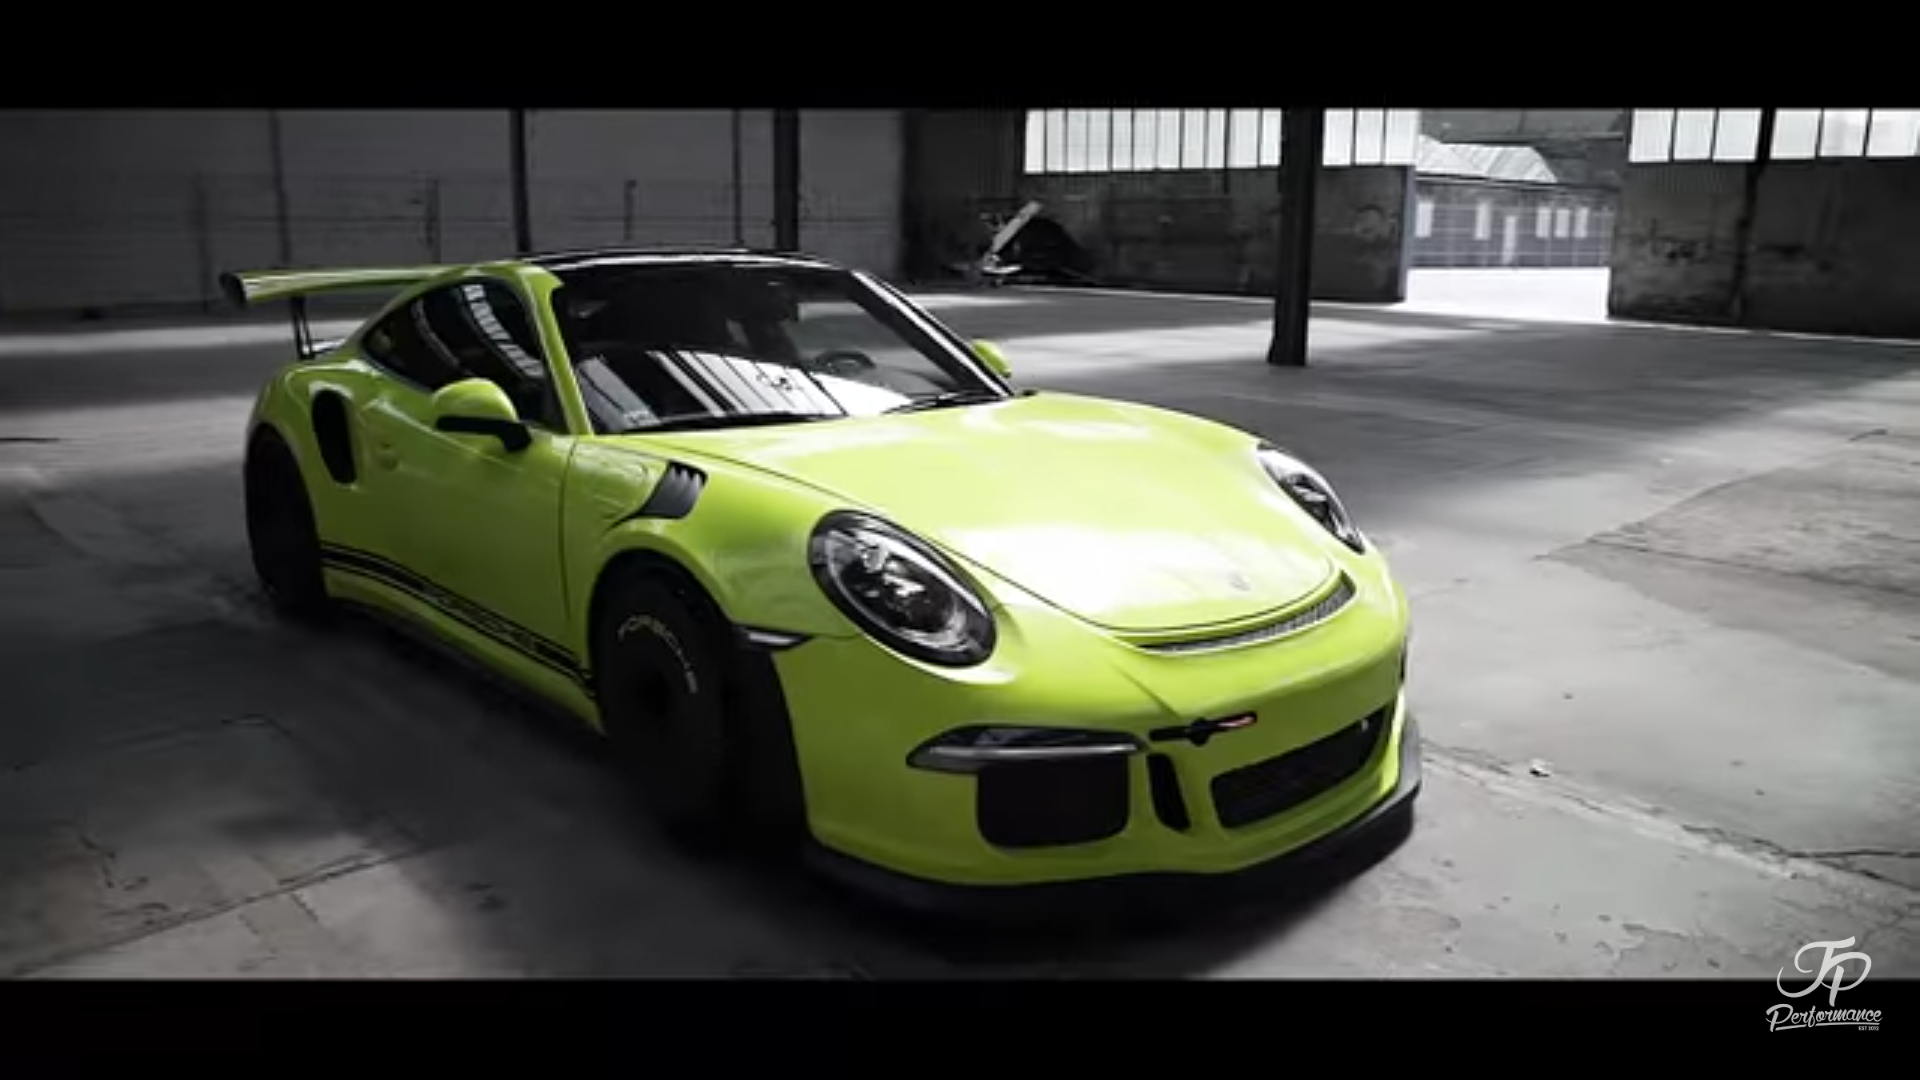 Porsche Turbo Jp Army